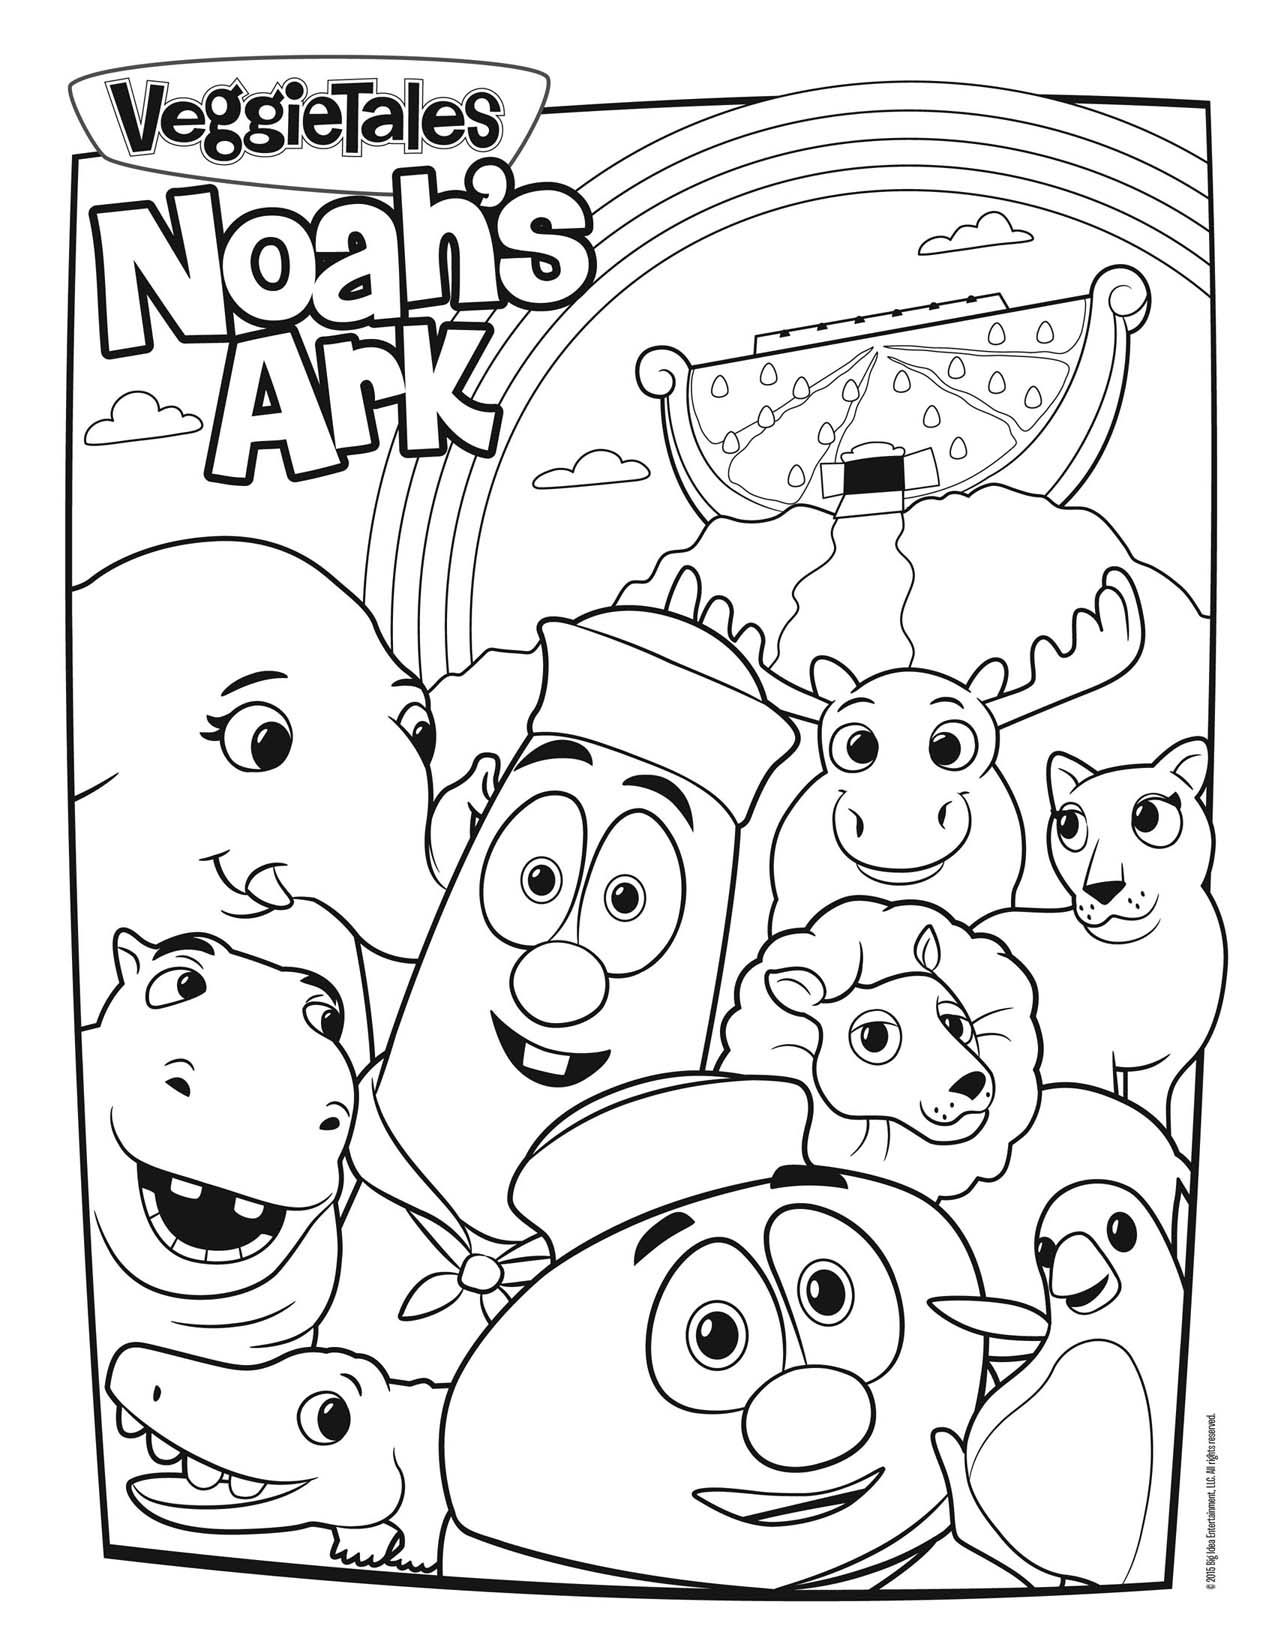 coloring pages featuring veggie tales - photo#33